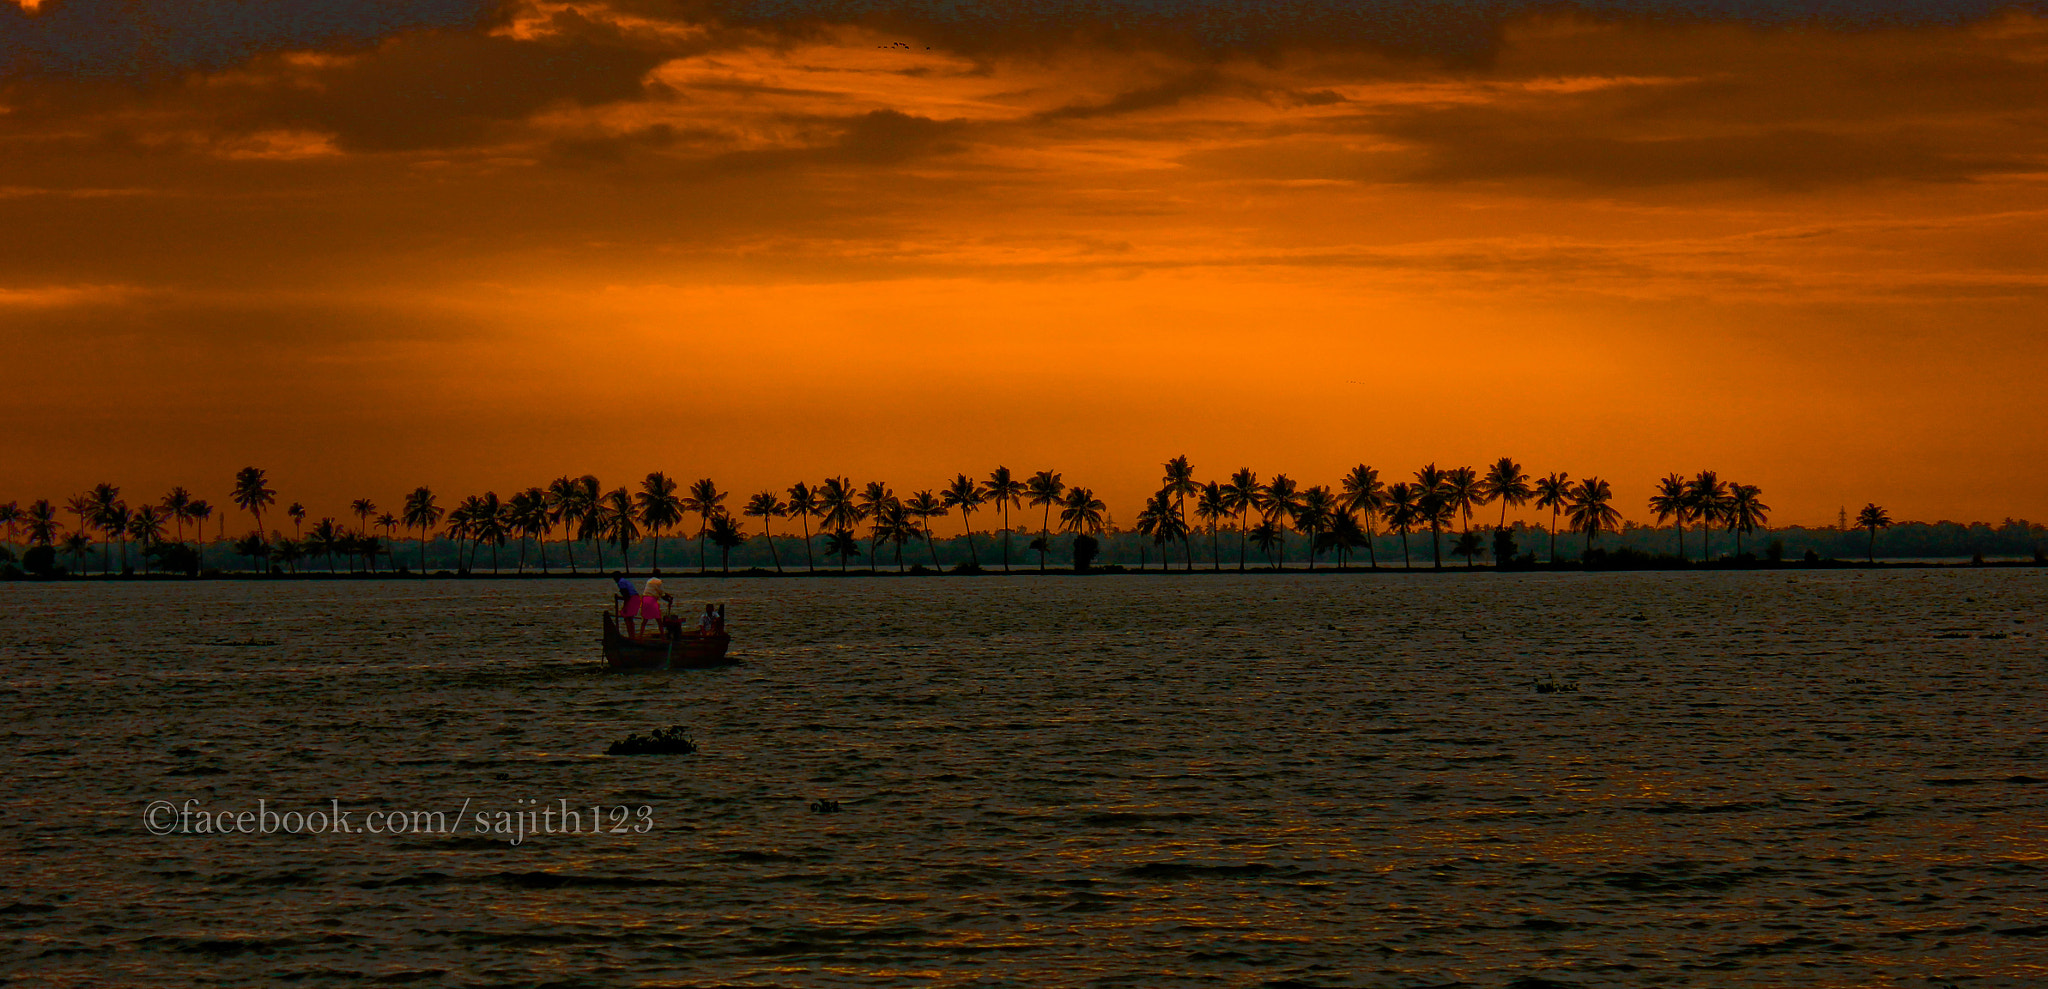 Photograph To the horizon by Sajith S on 500px